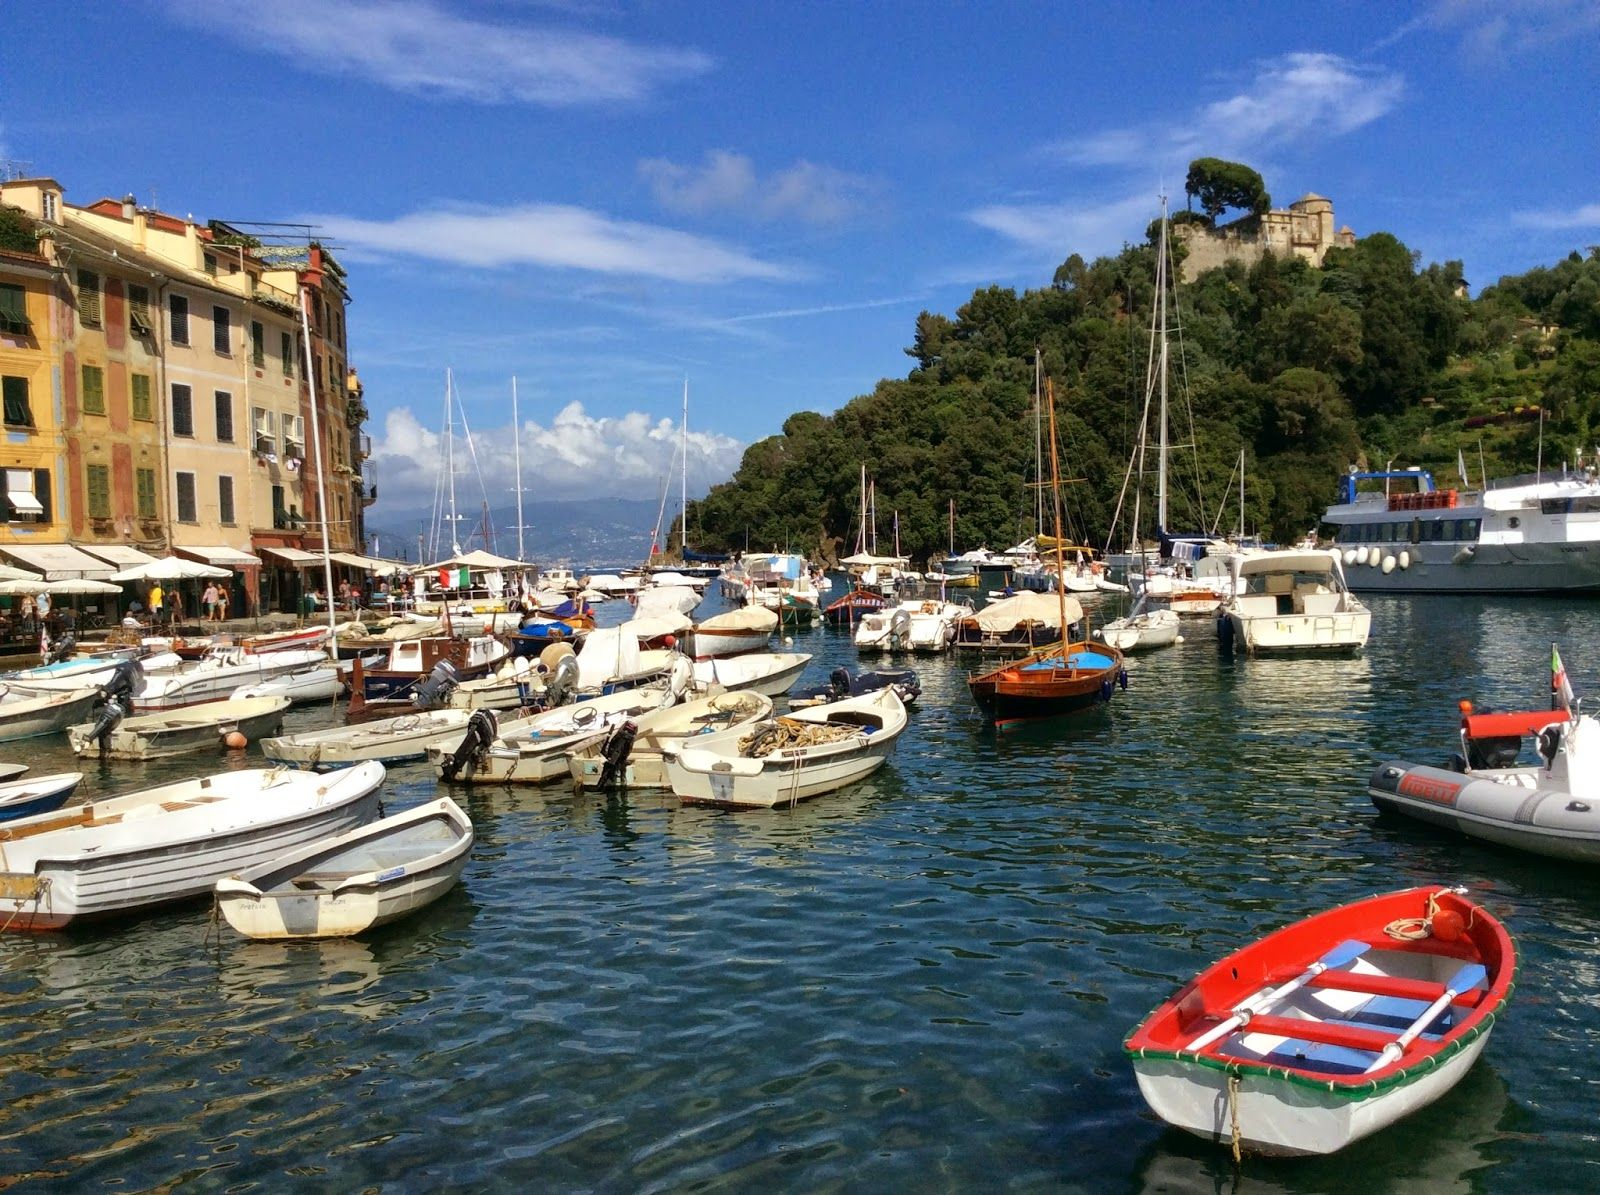 PORTOFINO:  The harbour and Castello Brown on the hilltop http://destinationfiction.blogspot.ca/2015/03/resort-towns-of-italian-riviera.html